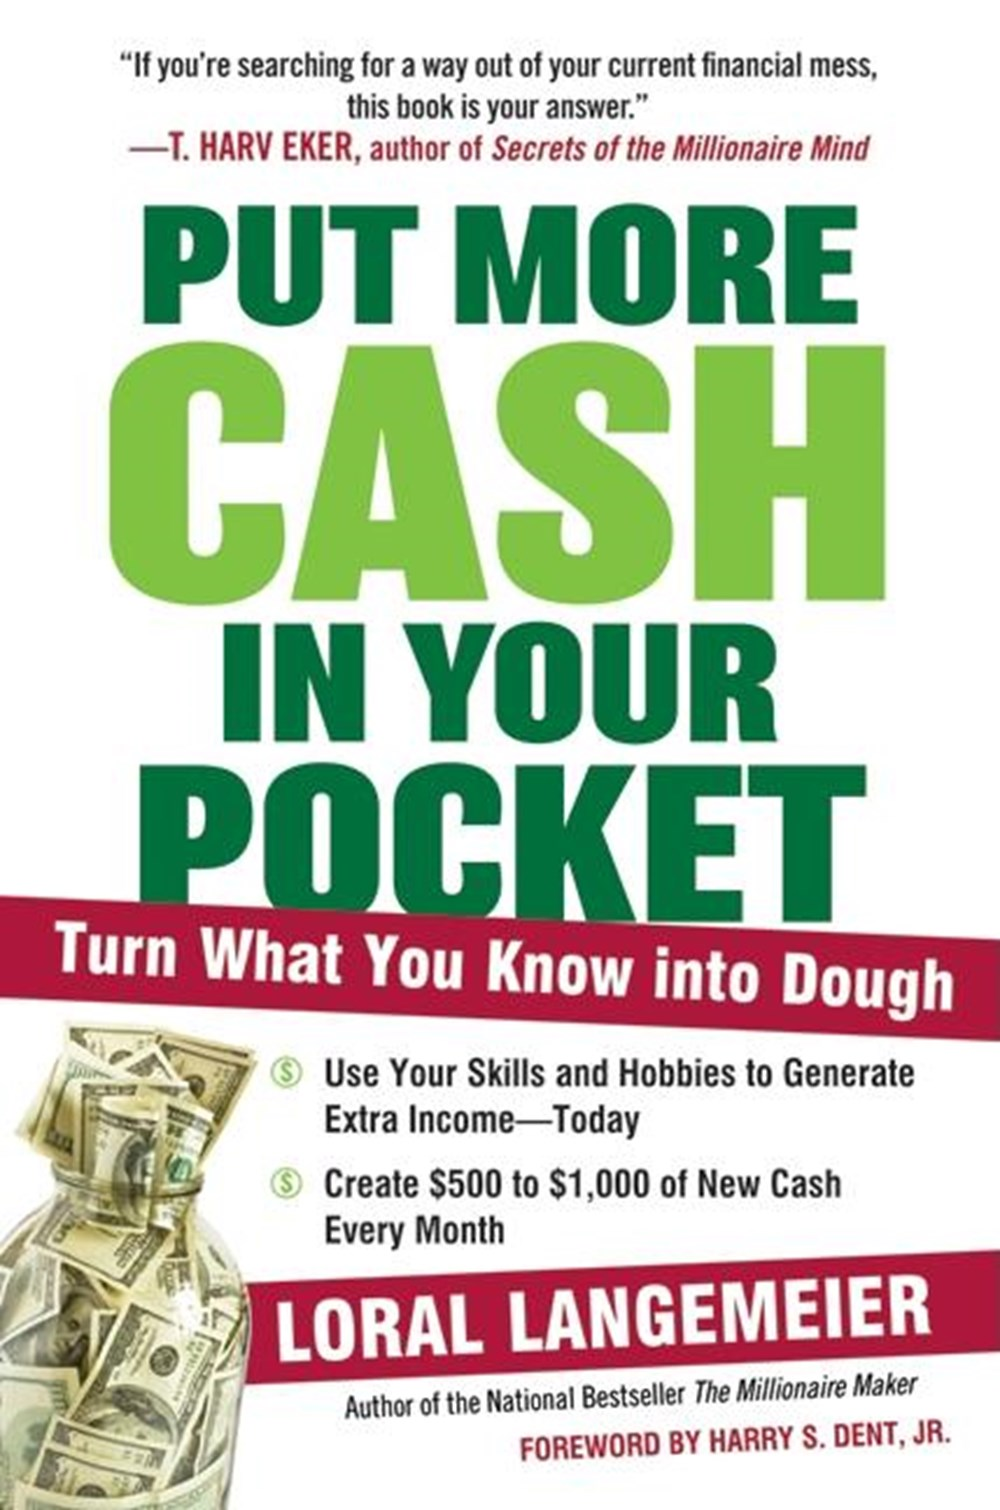 Put More Cash in Your Pocket Turn What You Know Into Dough